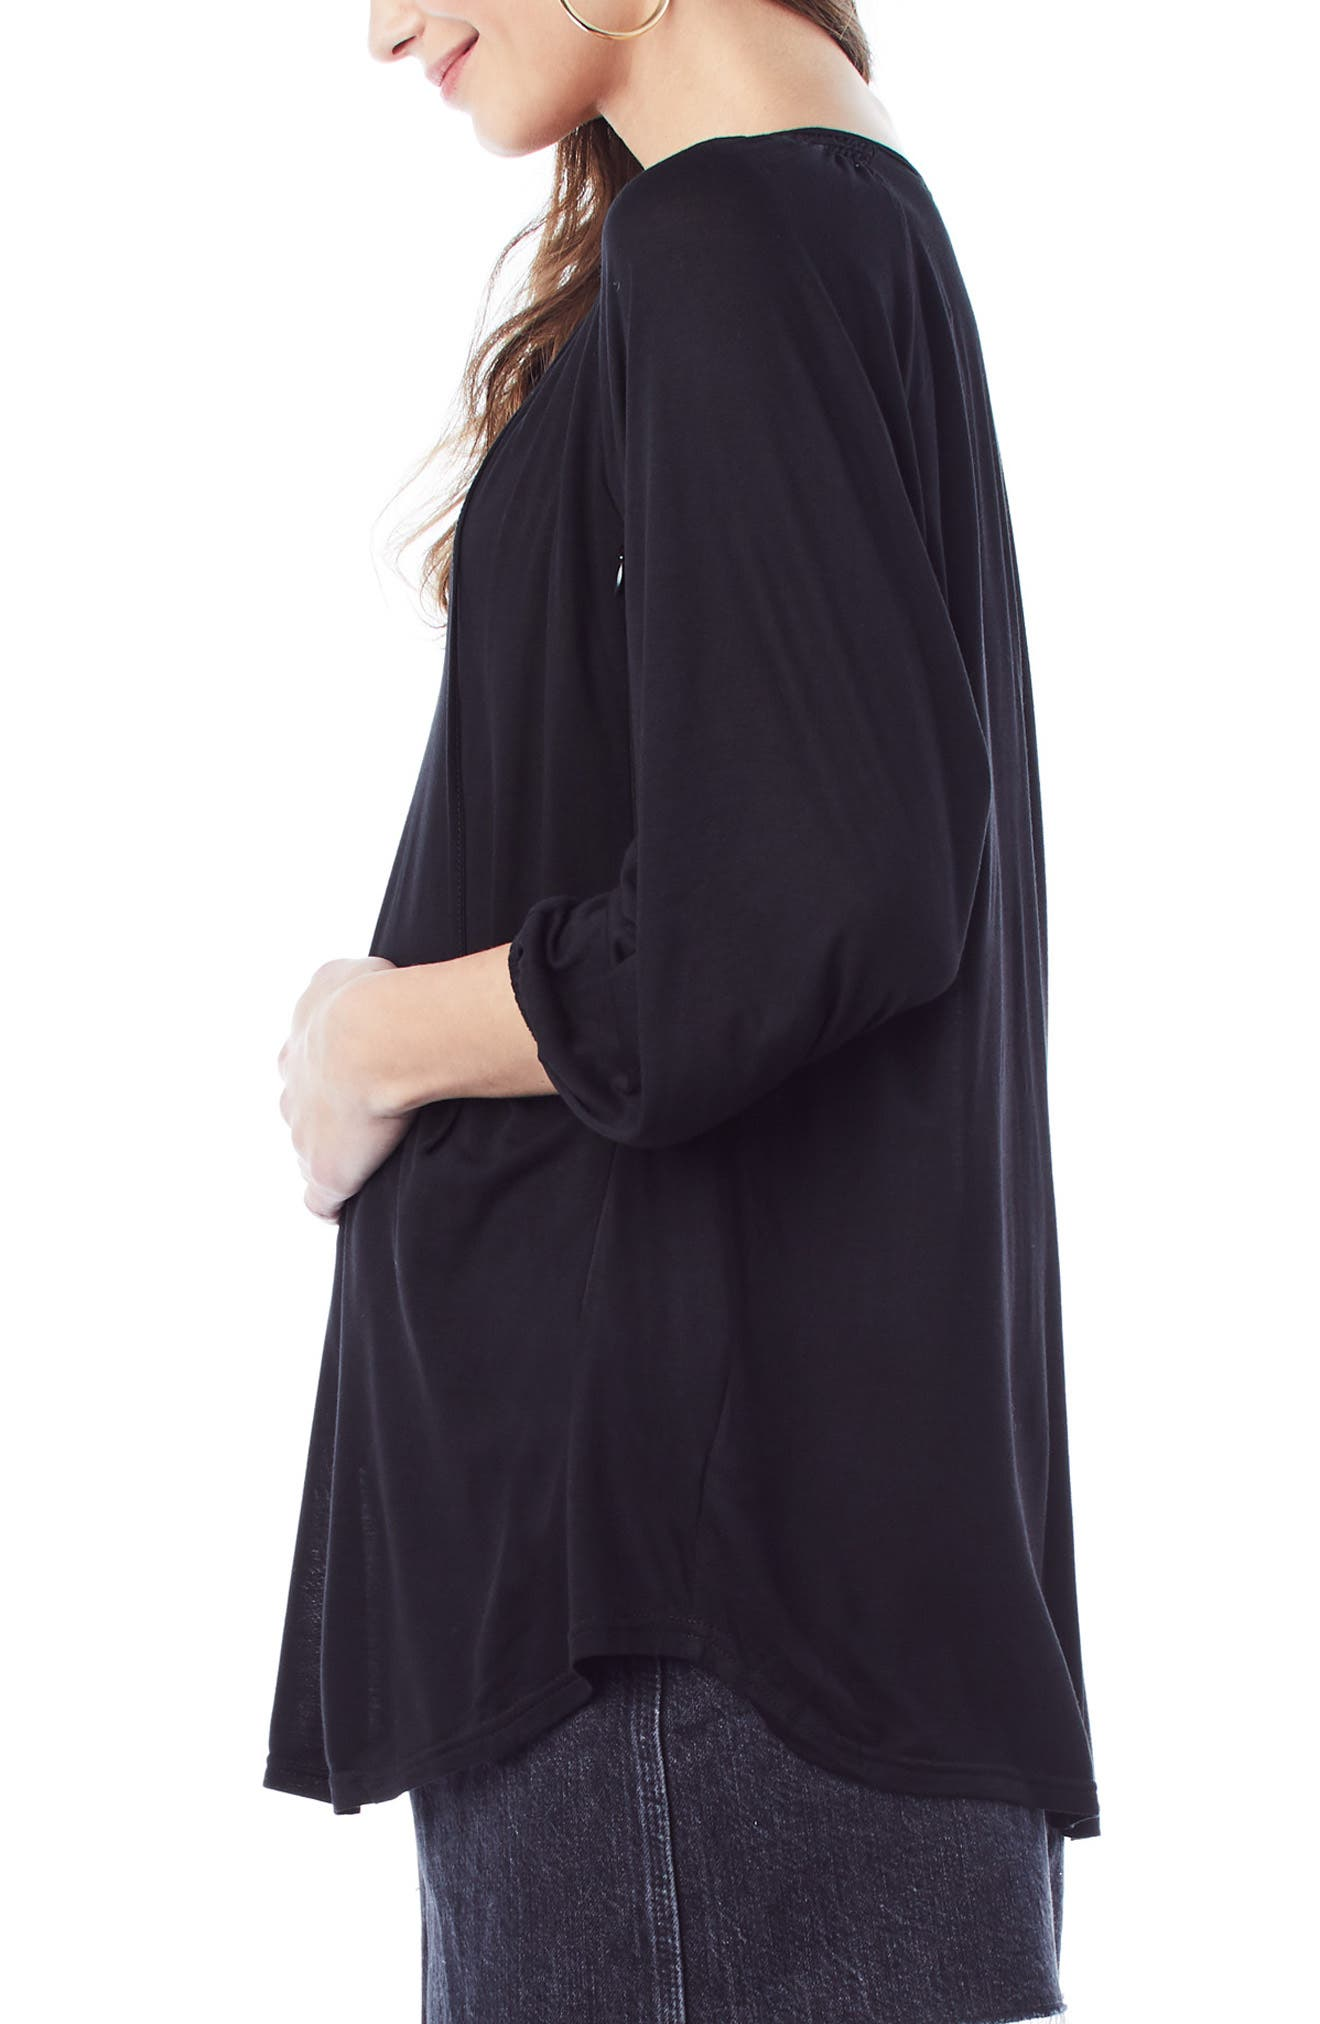 'Megan' Maternity/Nursing Top,                             Alternate thumbnail 3, color,                             BLACK